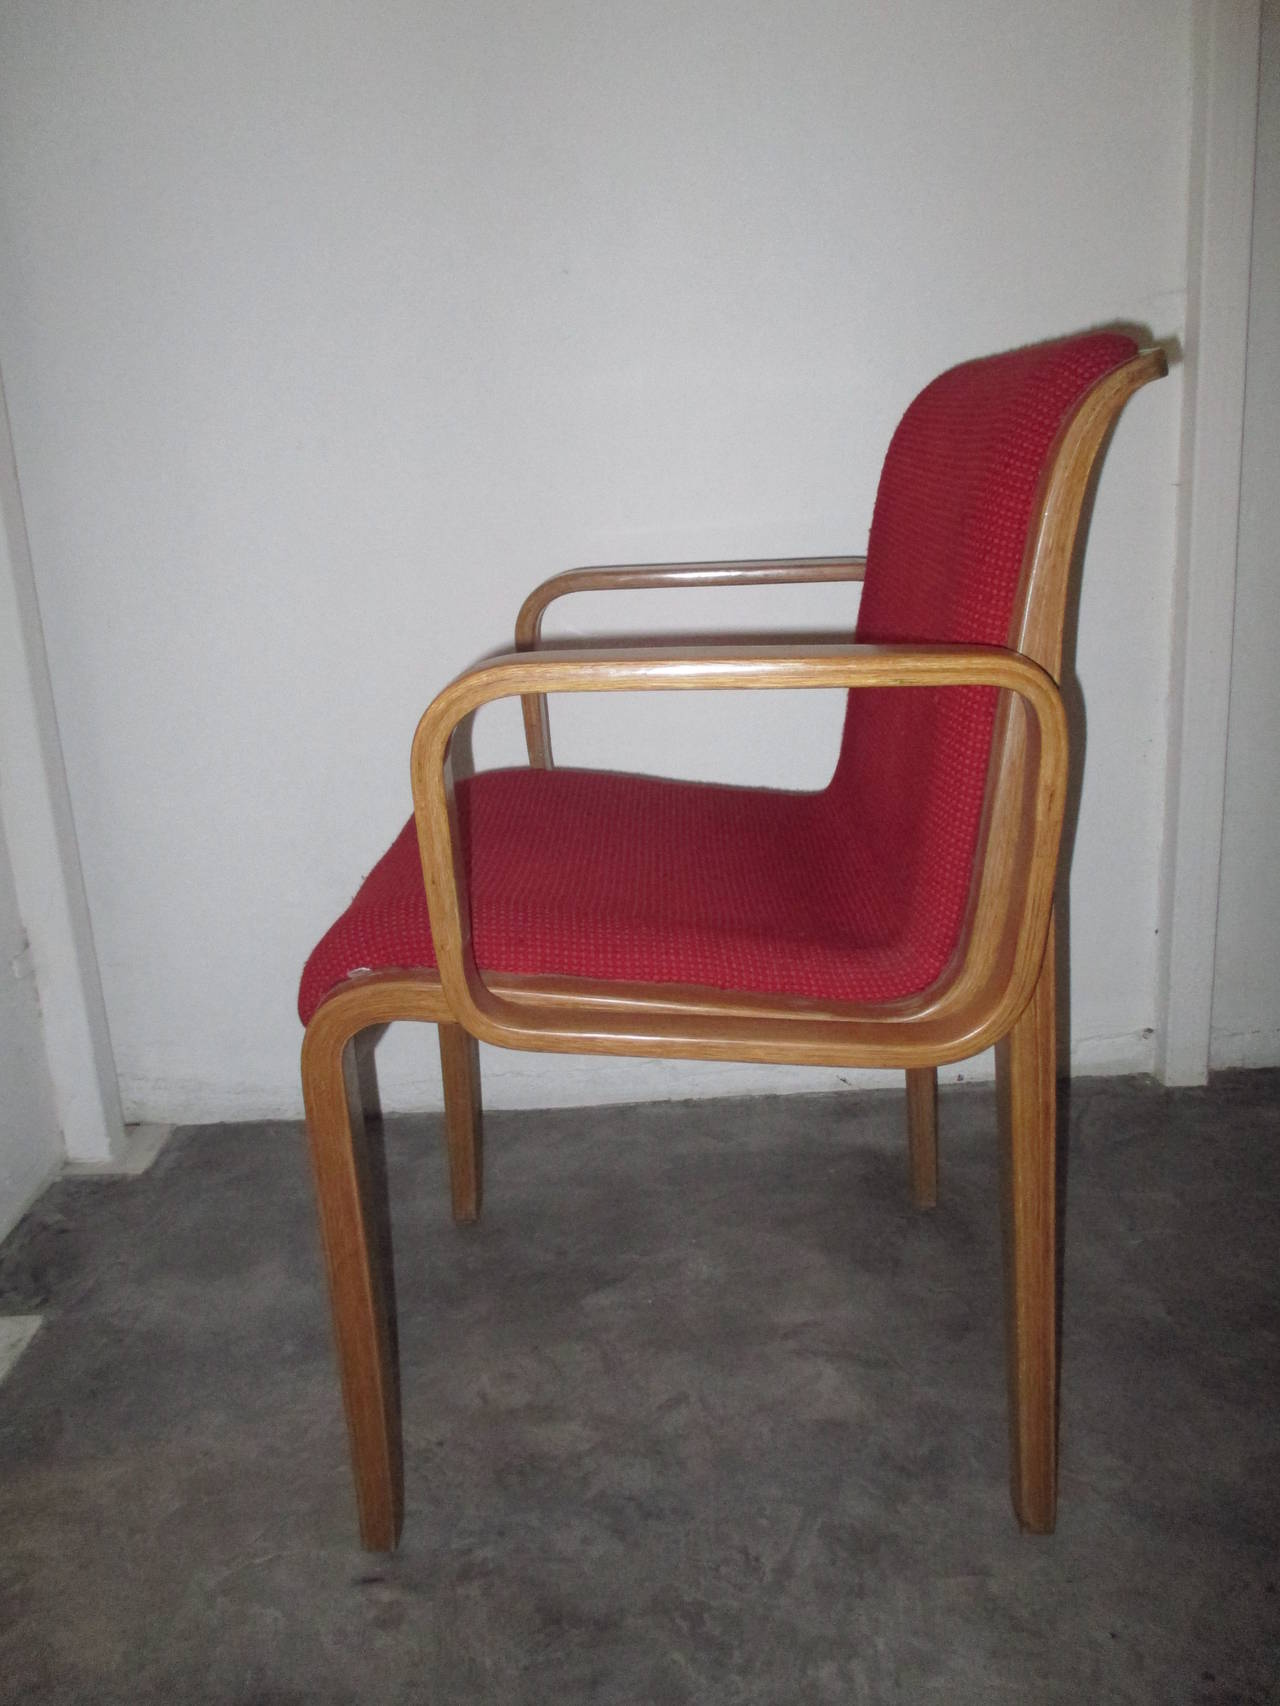 20 Bill Stephens for Knoll Dining Side Chairs at 1stdibs